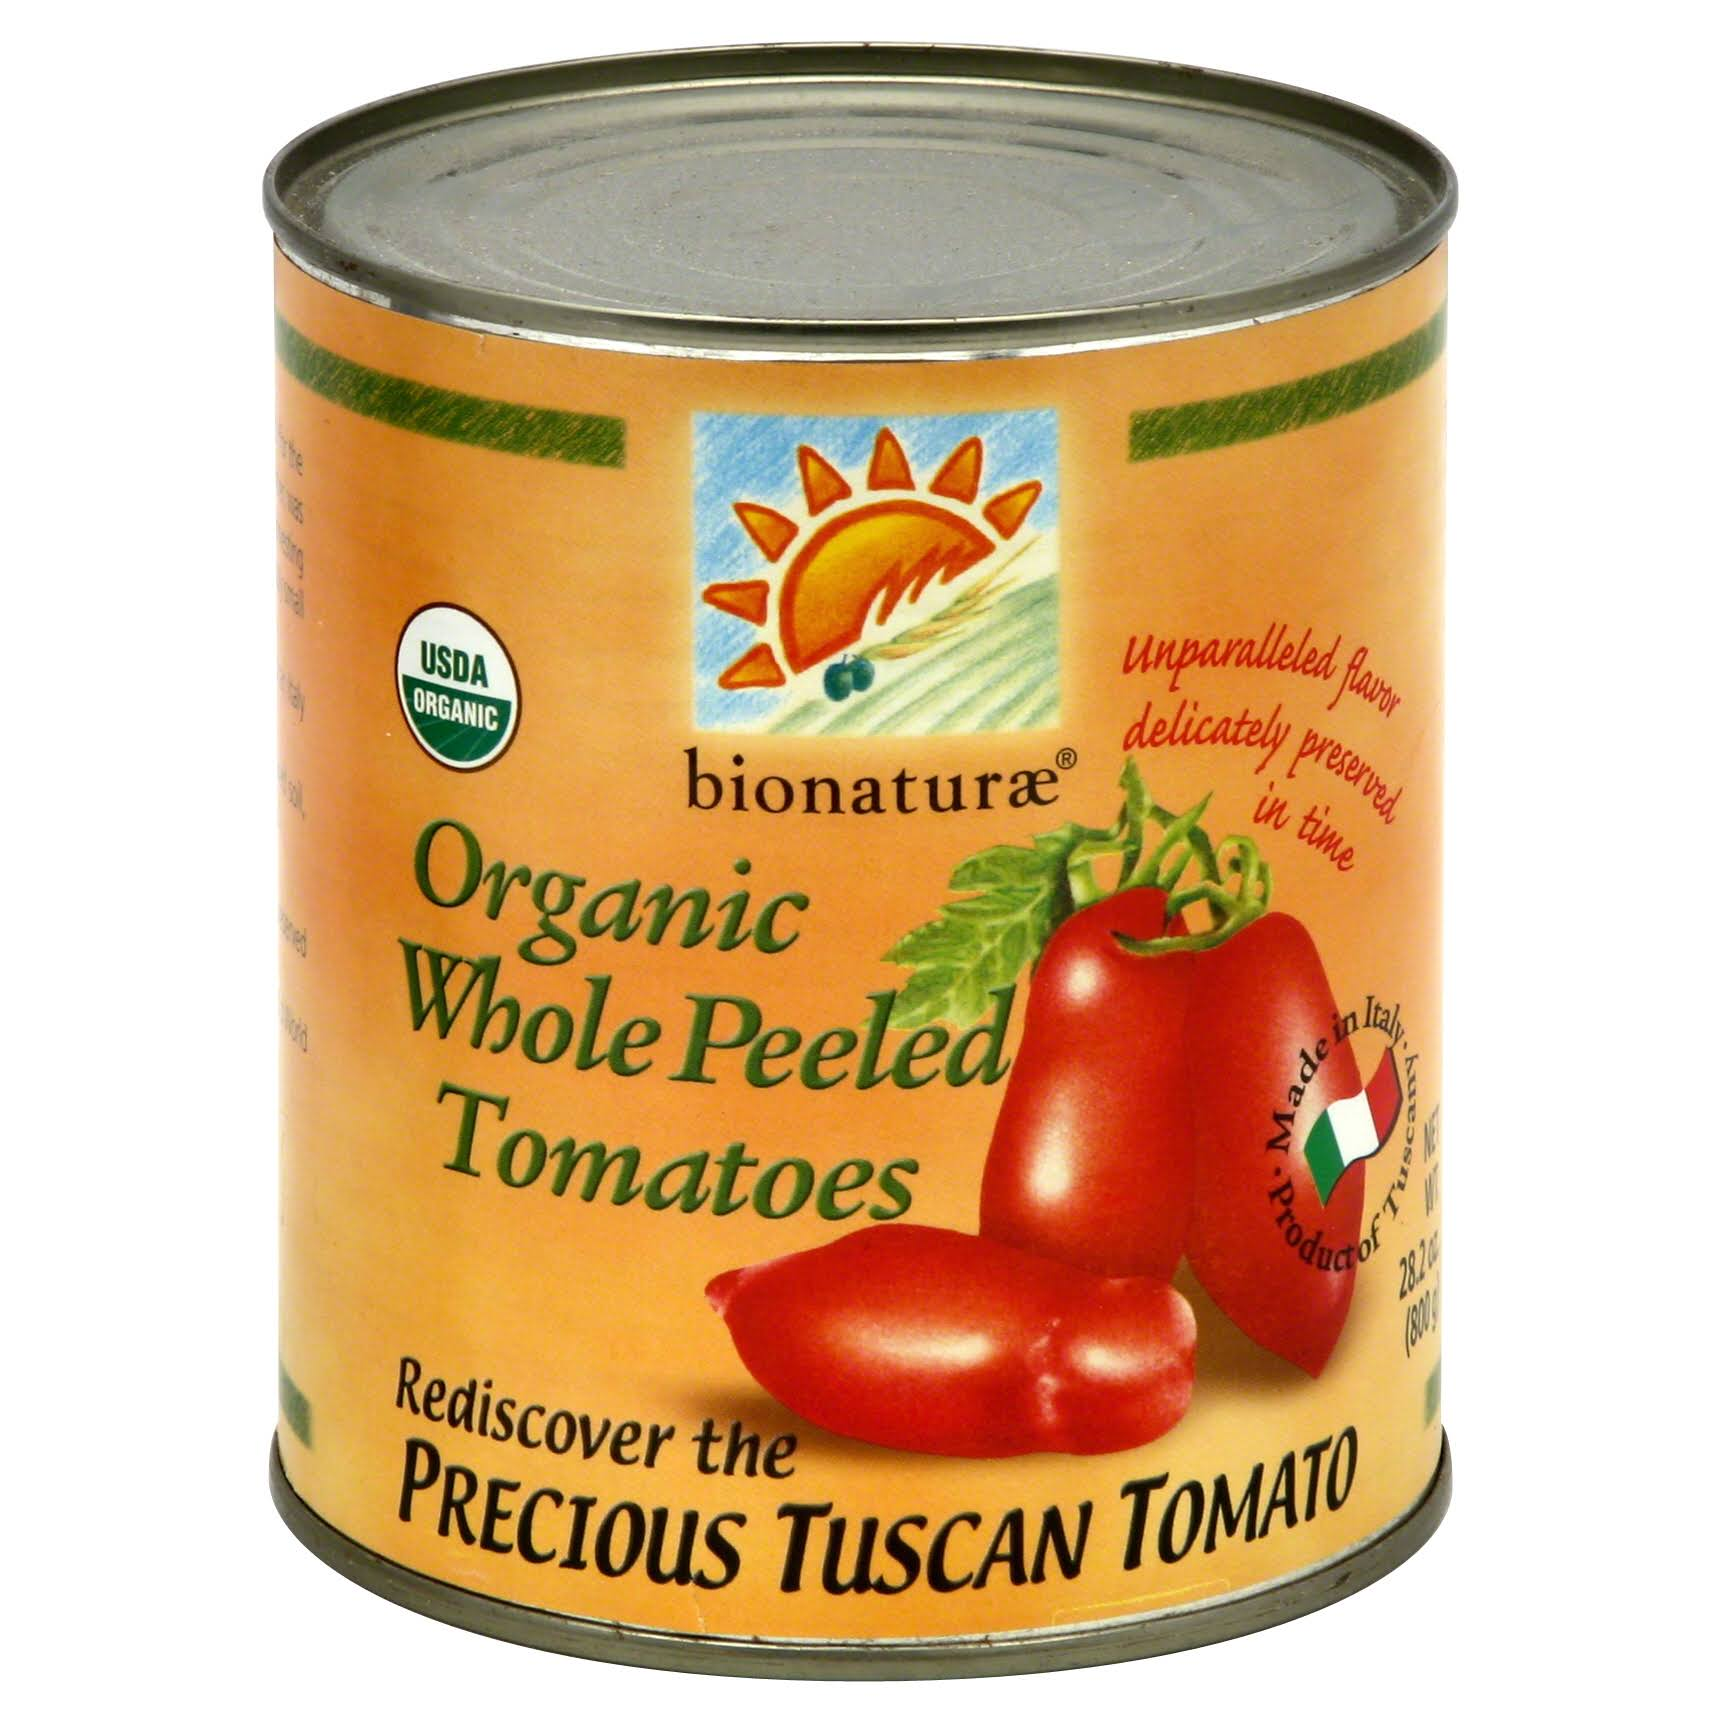 bionaturae Tomatoes, Organic Whole Peeled - 28.2 oz